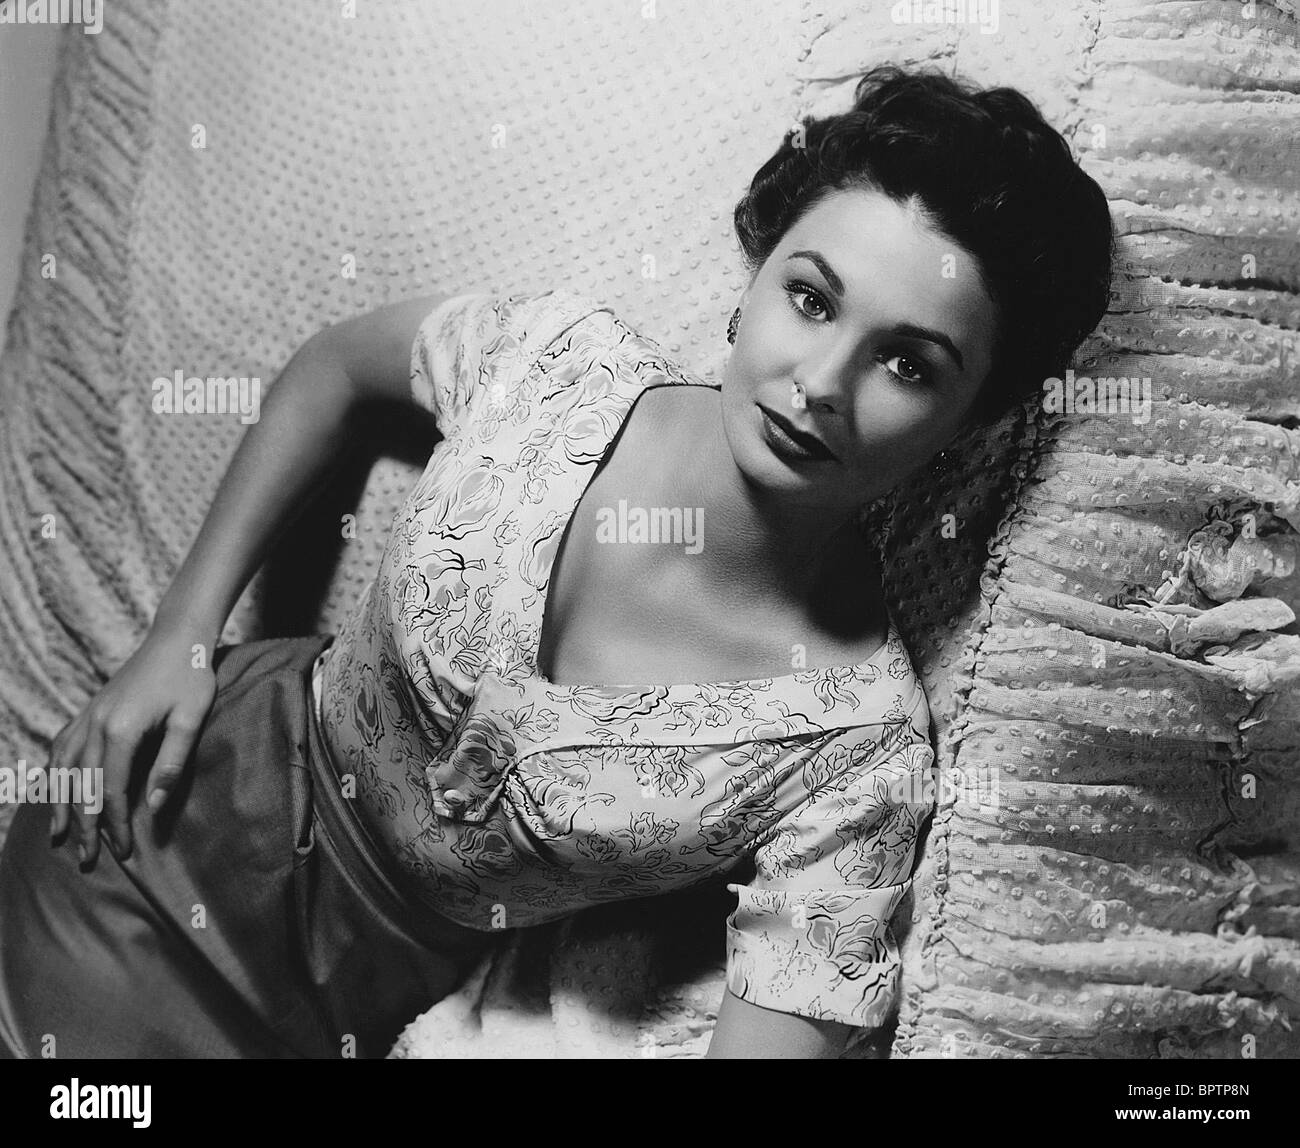 JEAN SIMMONS ACTRESS (1956) - Stock Image